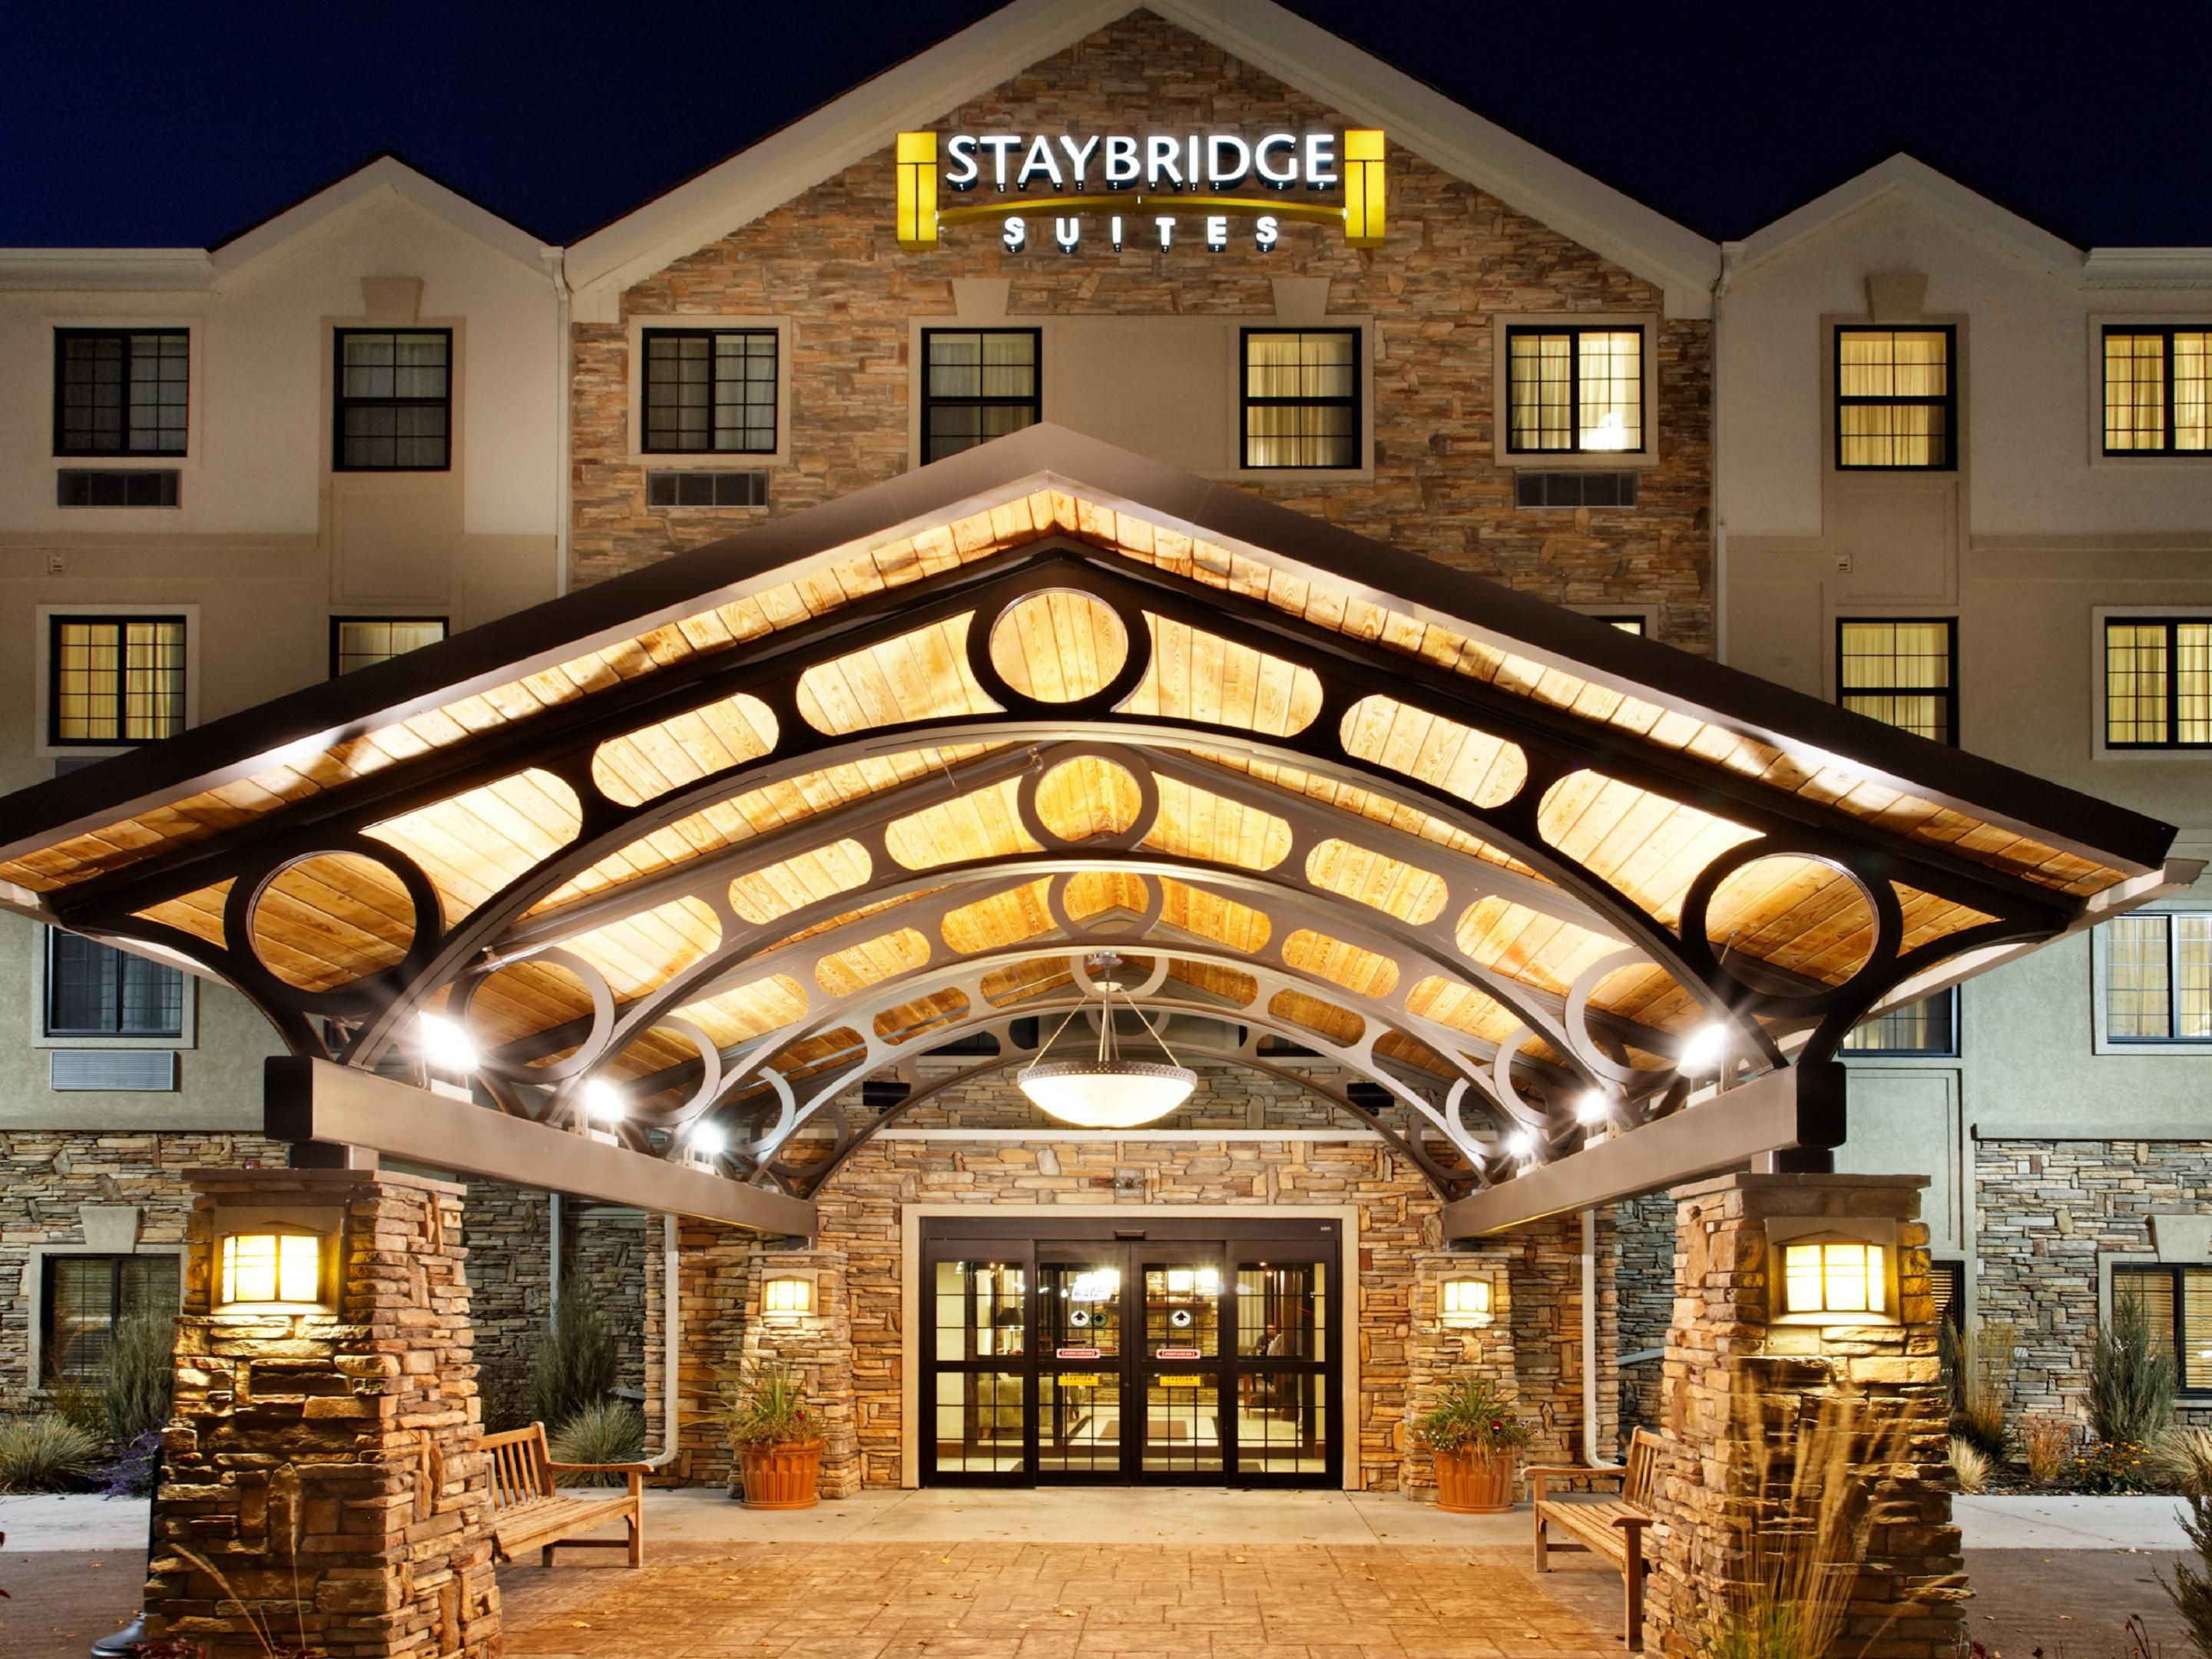 Lexington Hotels Staybridge Suites Extended Stay Hotel In Kentucky